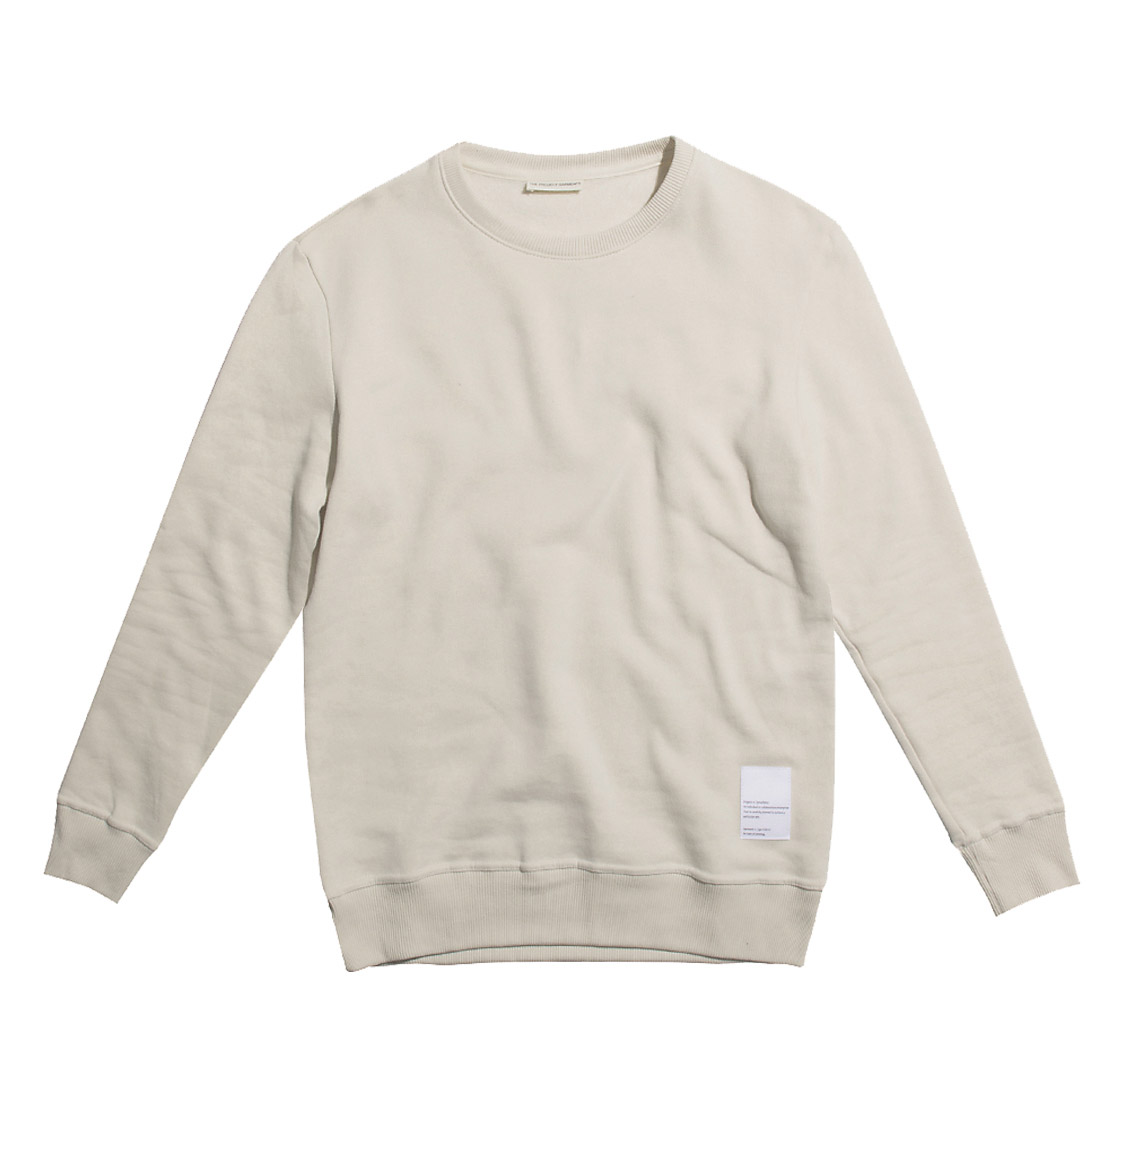 Logomania Crew Neck Sweatshirt Cream